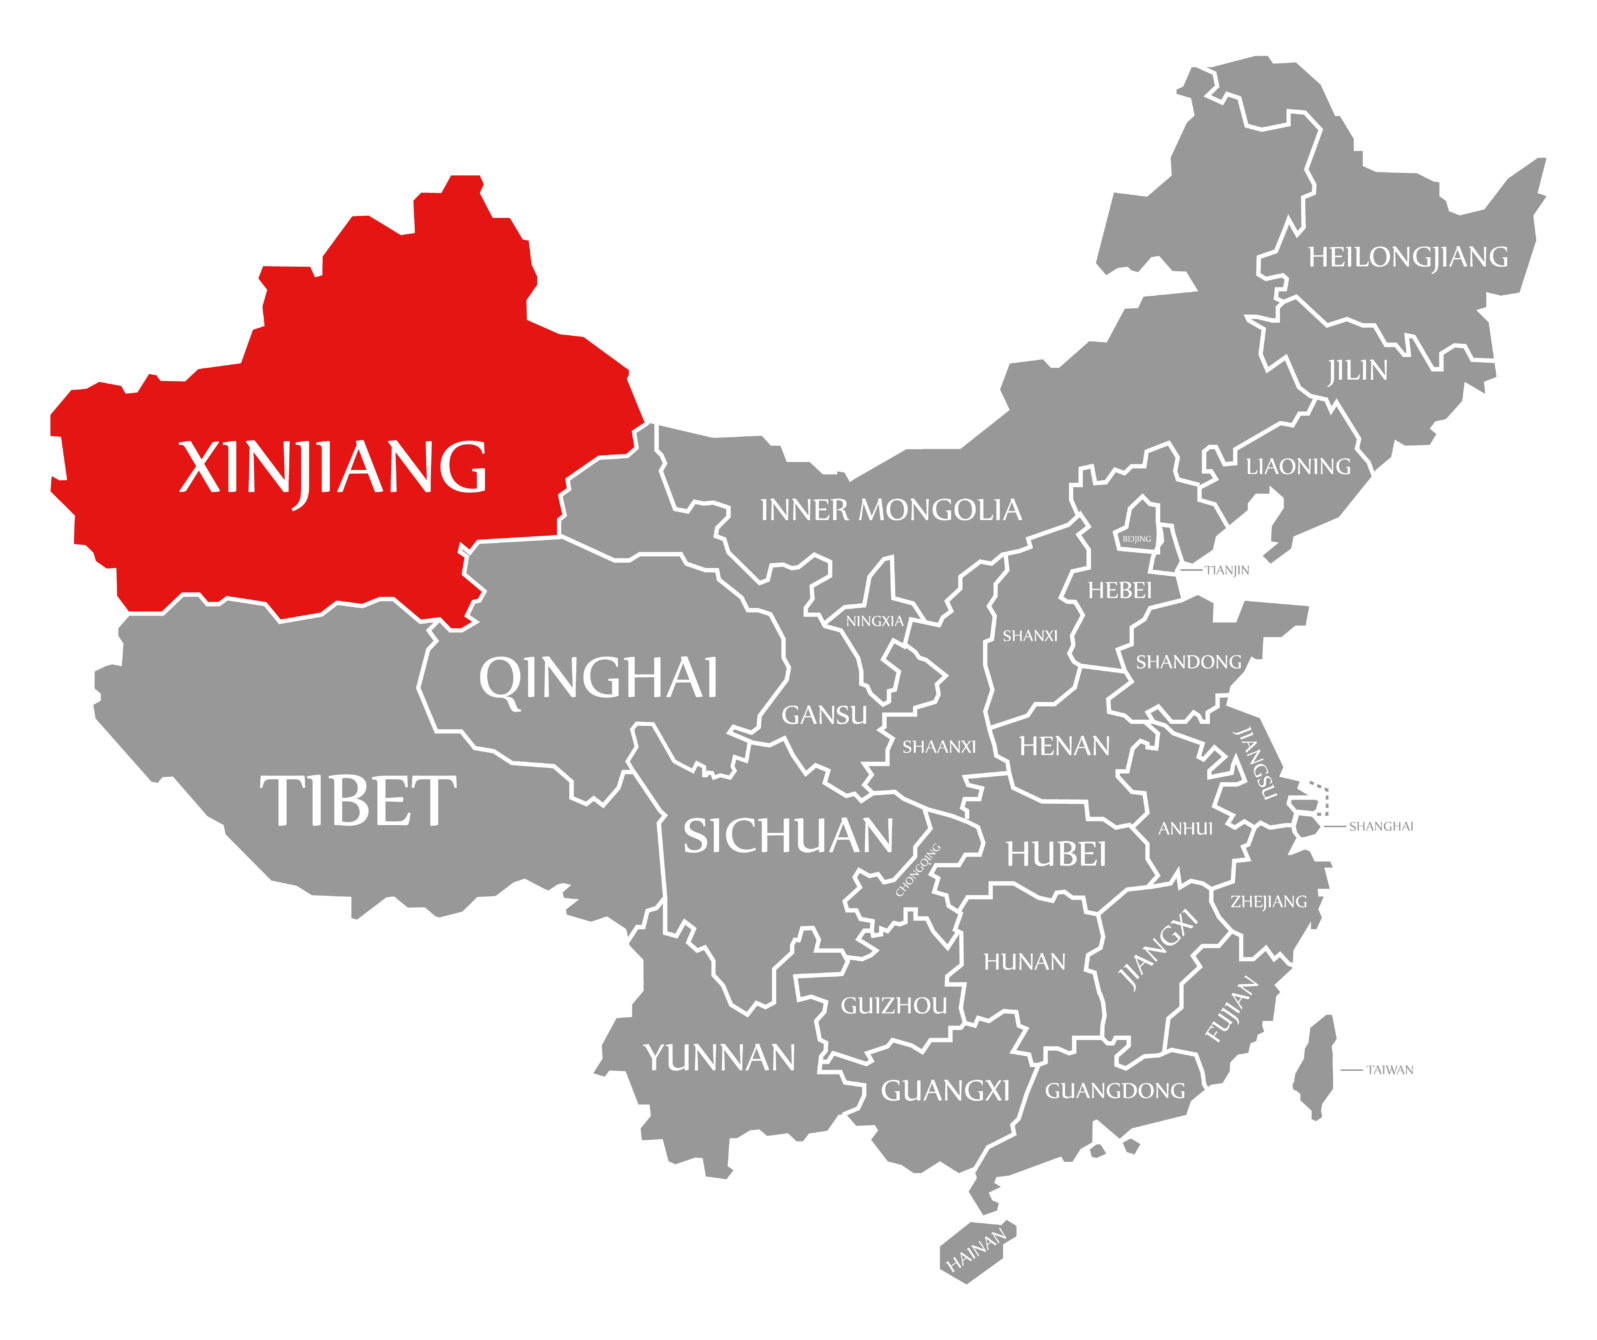 Xinjiang red highlighted in map of China